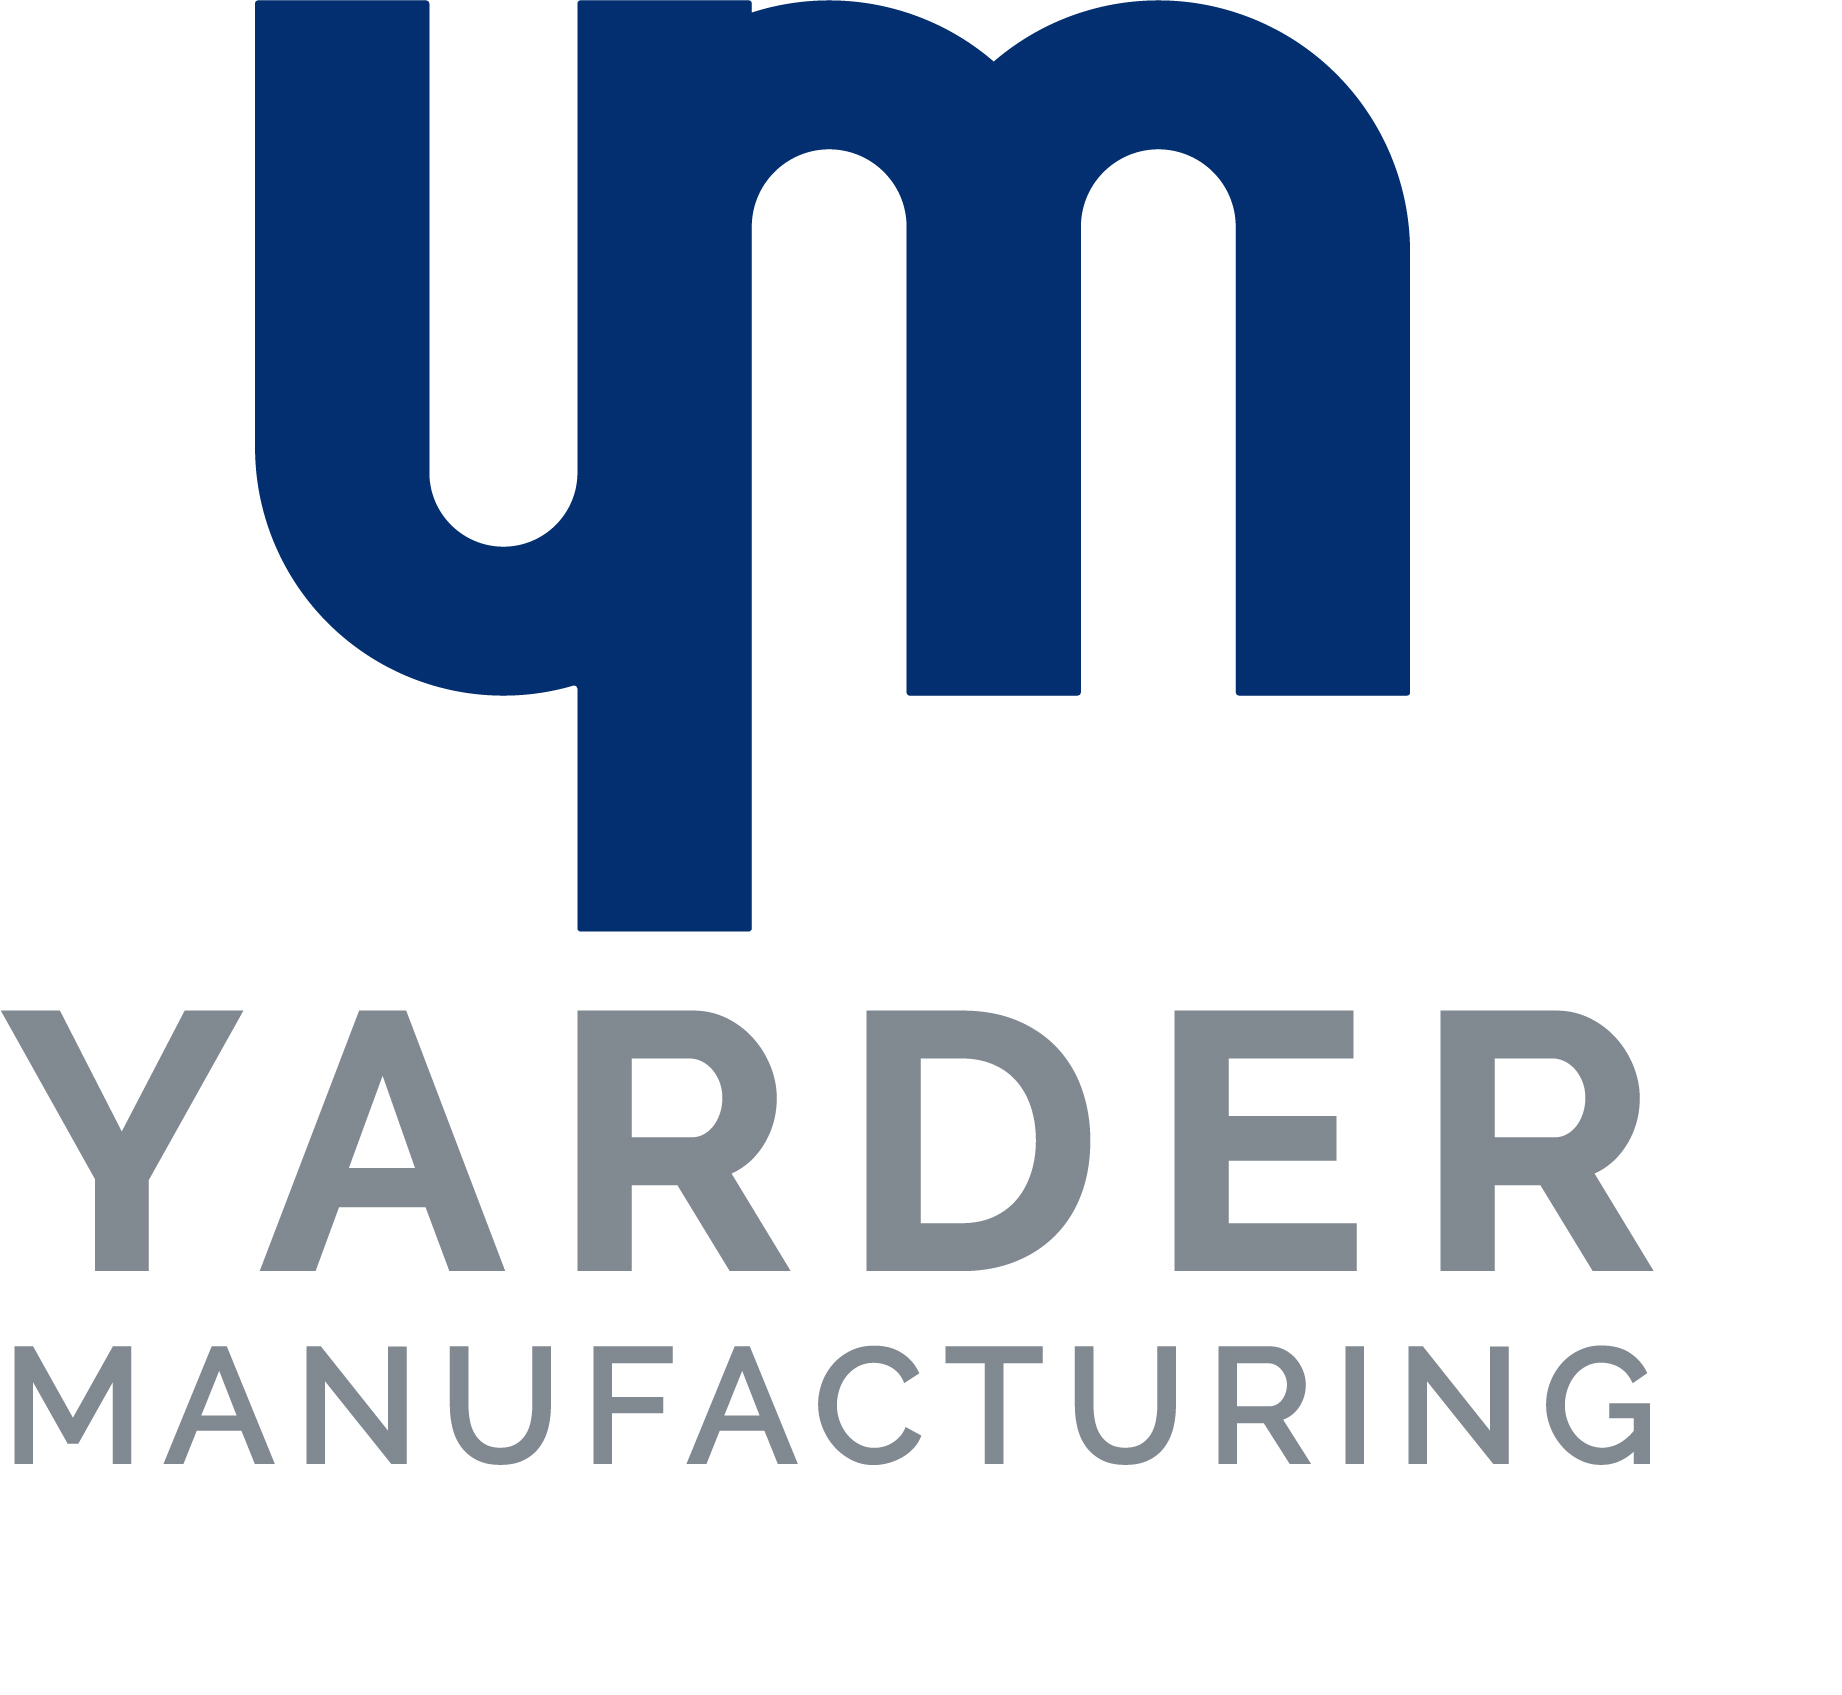 Yarder Manufacturing Company